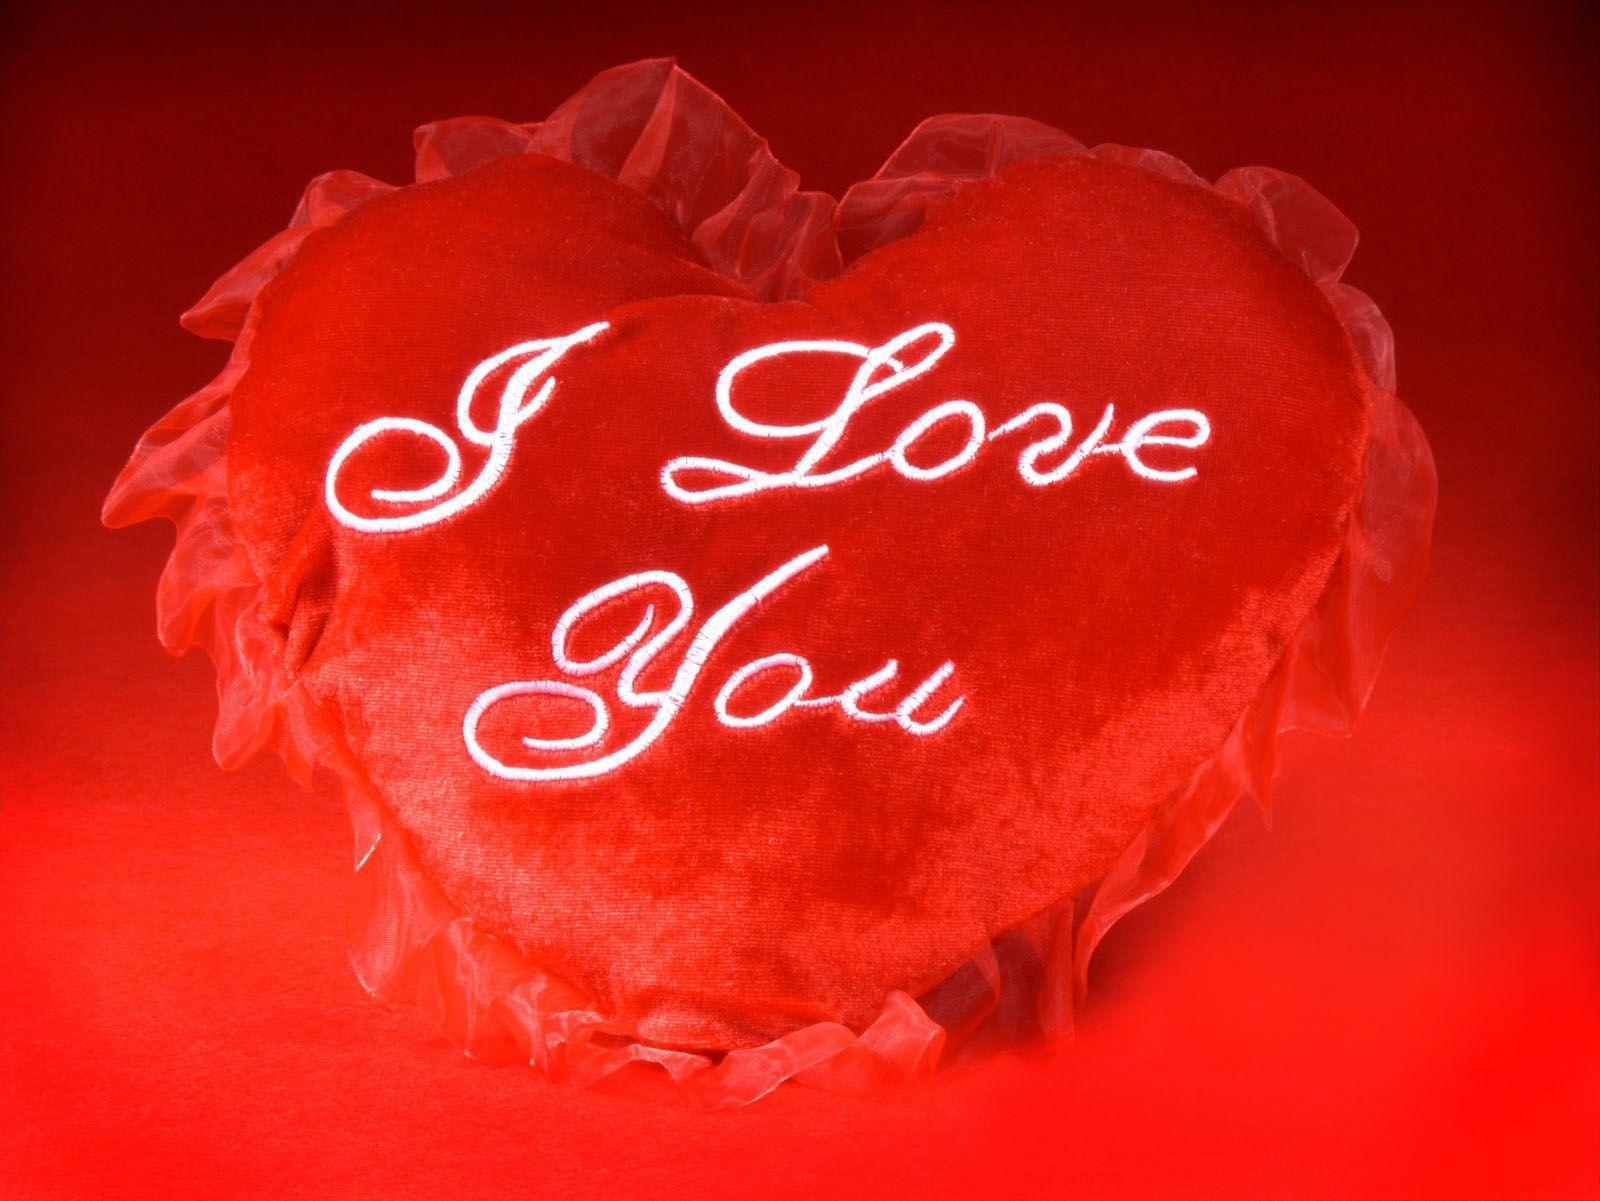 I Love You Wallpaper Love Wallpapers I Love You 34420 Hd